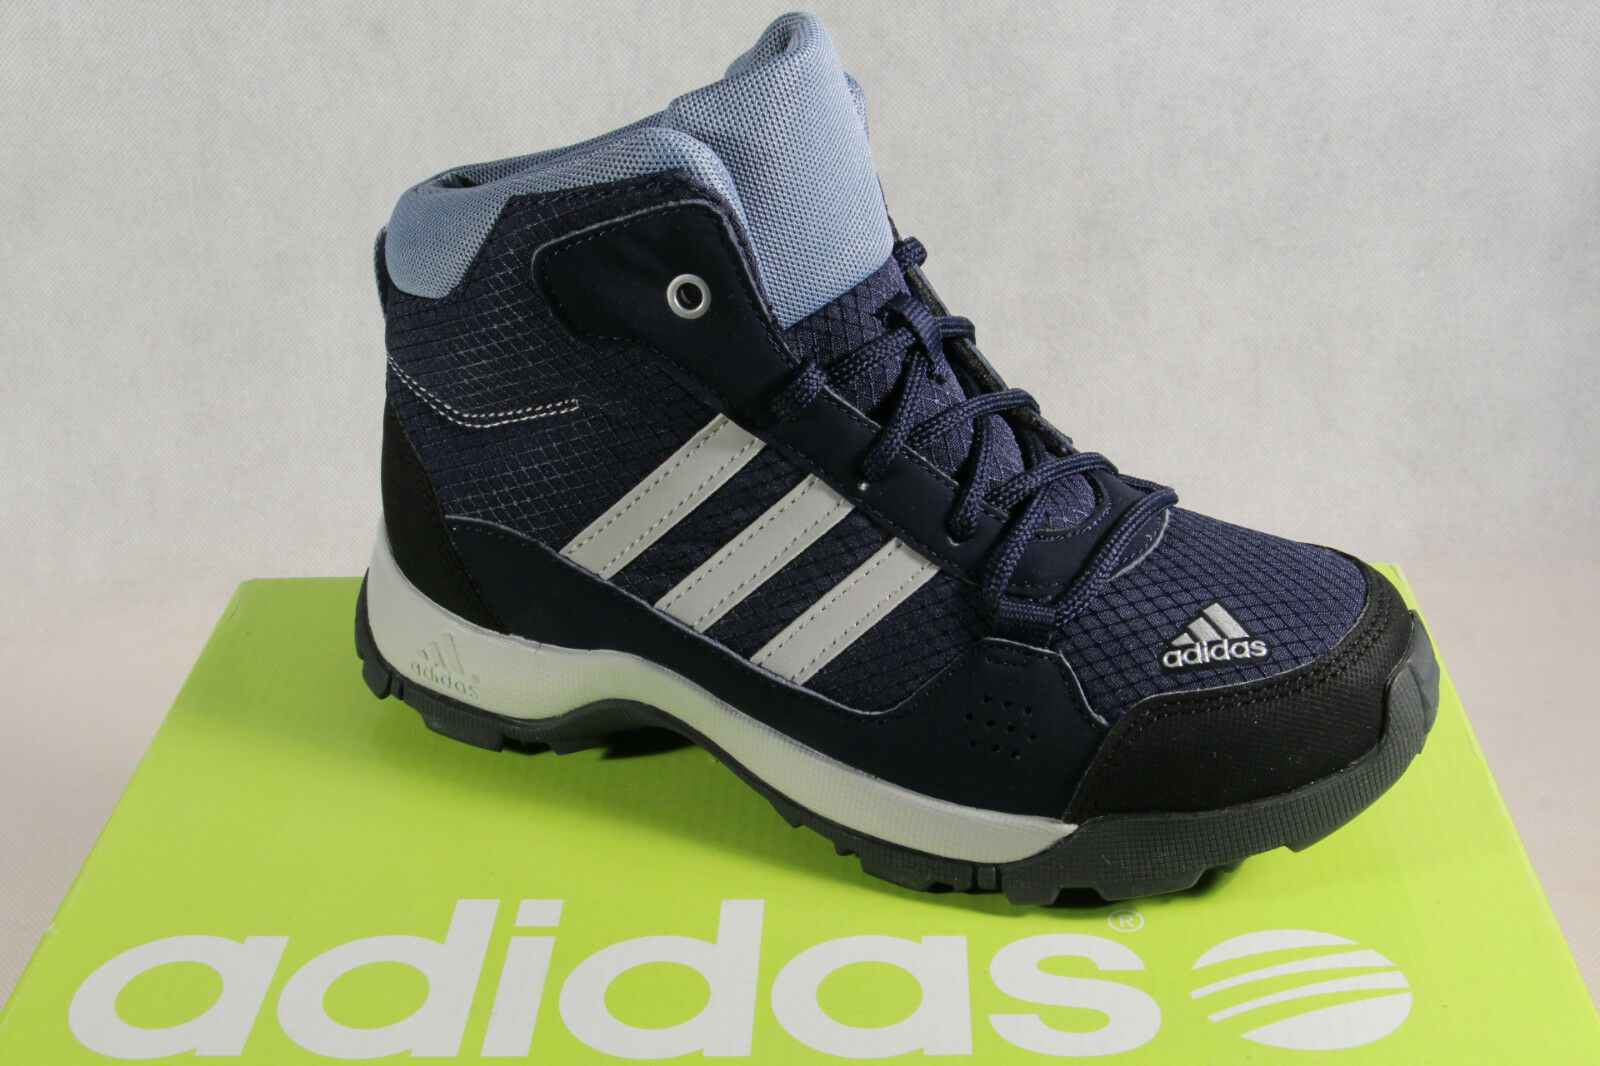 new concept 4bea0 0fa77 Adidas Hyperhiker K shoes Sport shoes Running bluee White New Outdoor shoes  ntyttw1703-Children s. Adidas Messi Pibe de Barrio 10.1 FG Mens ...